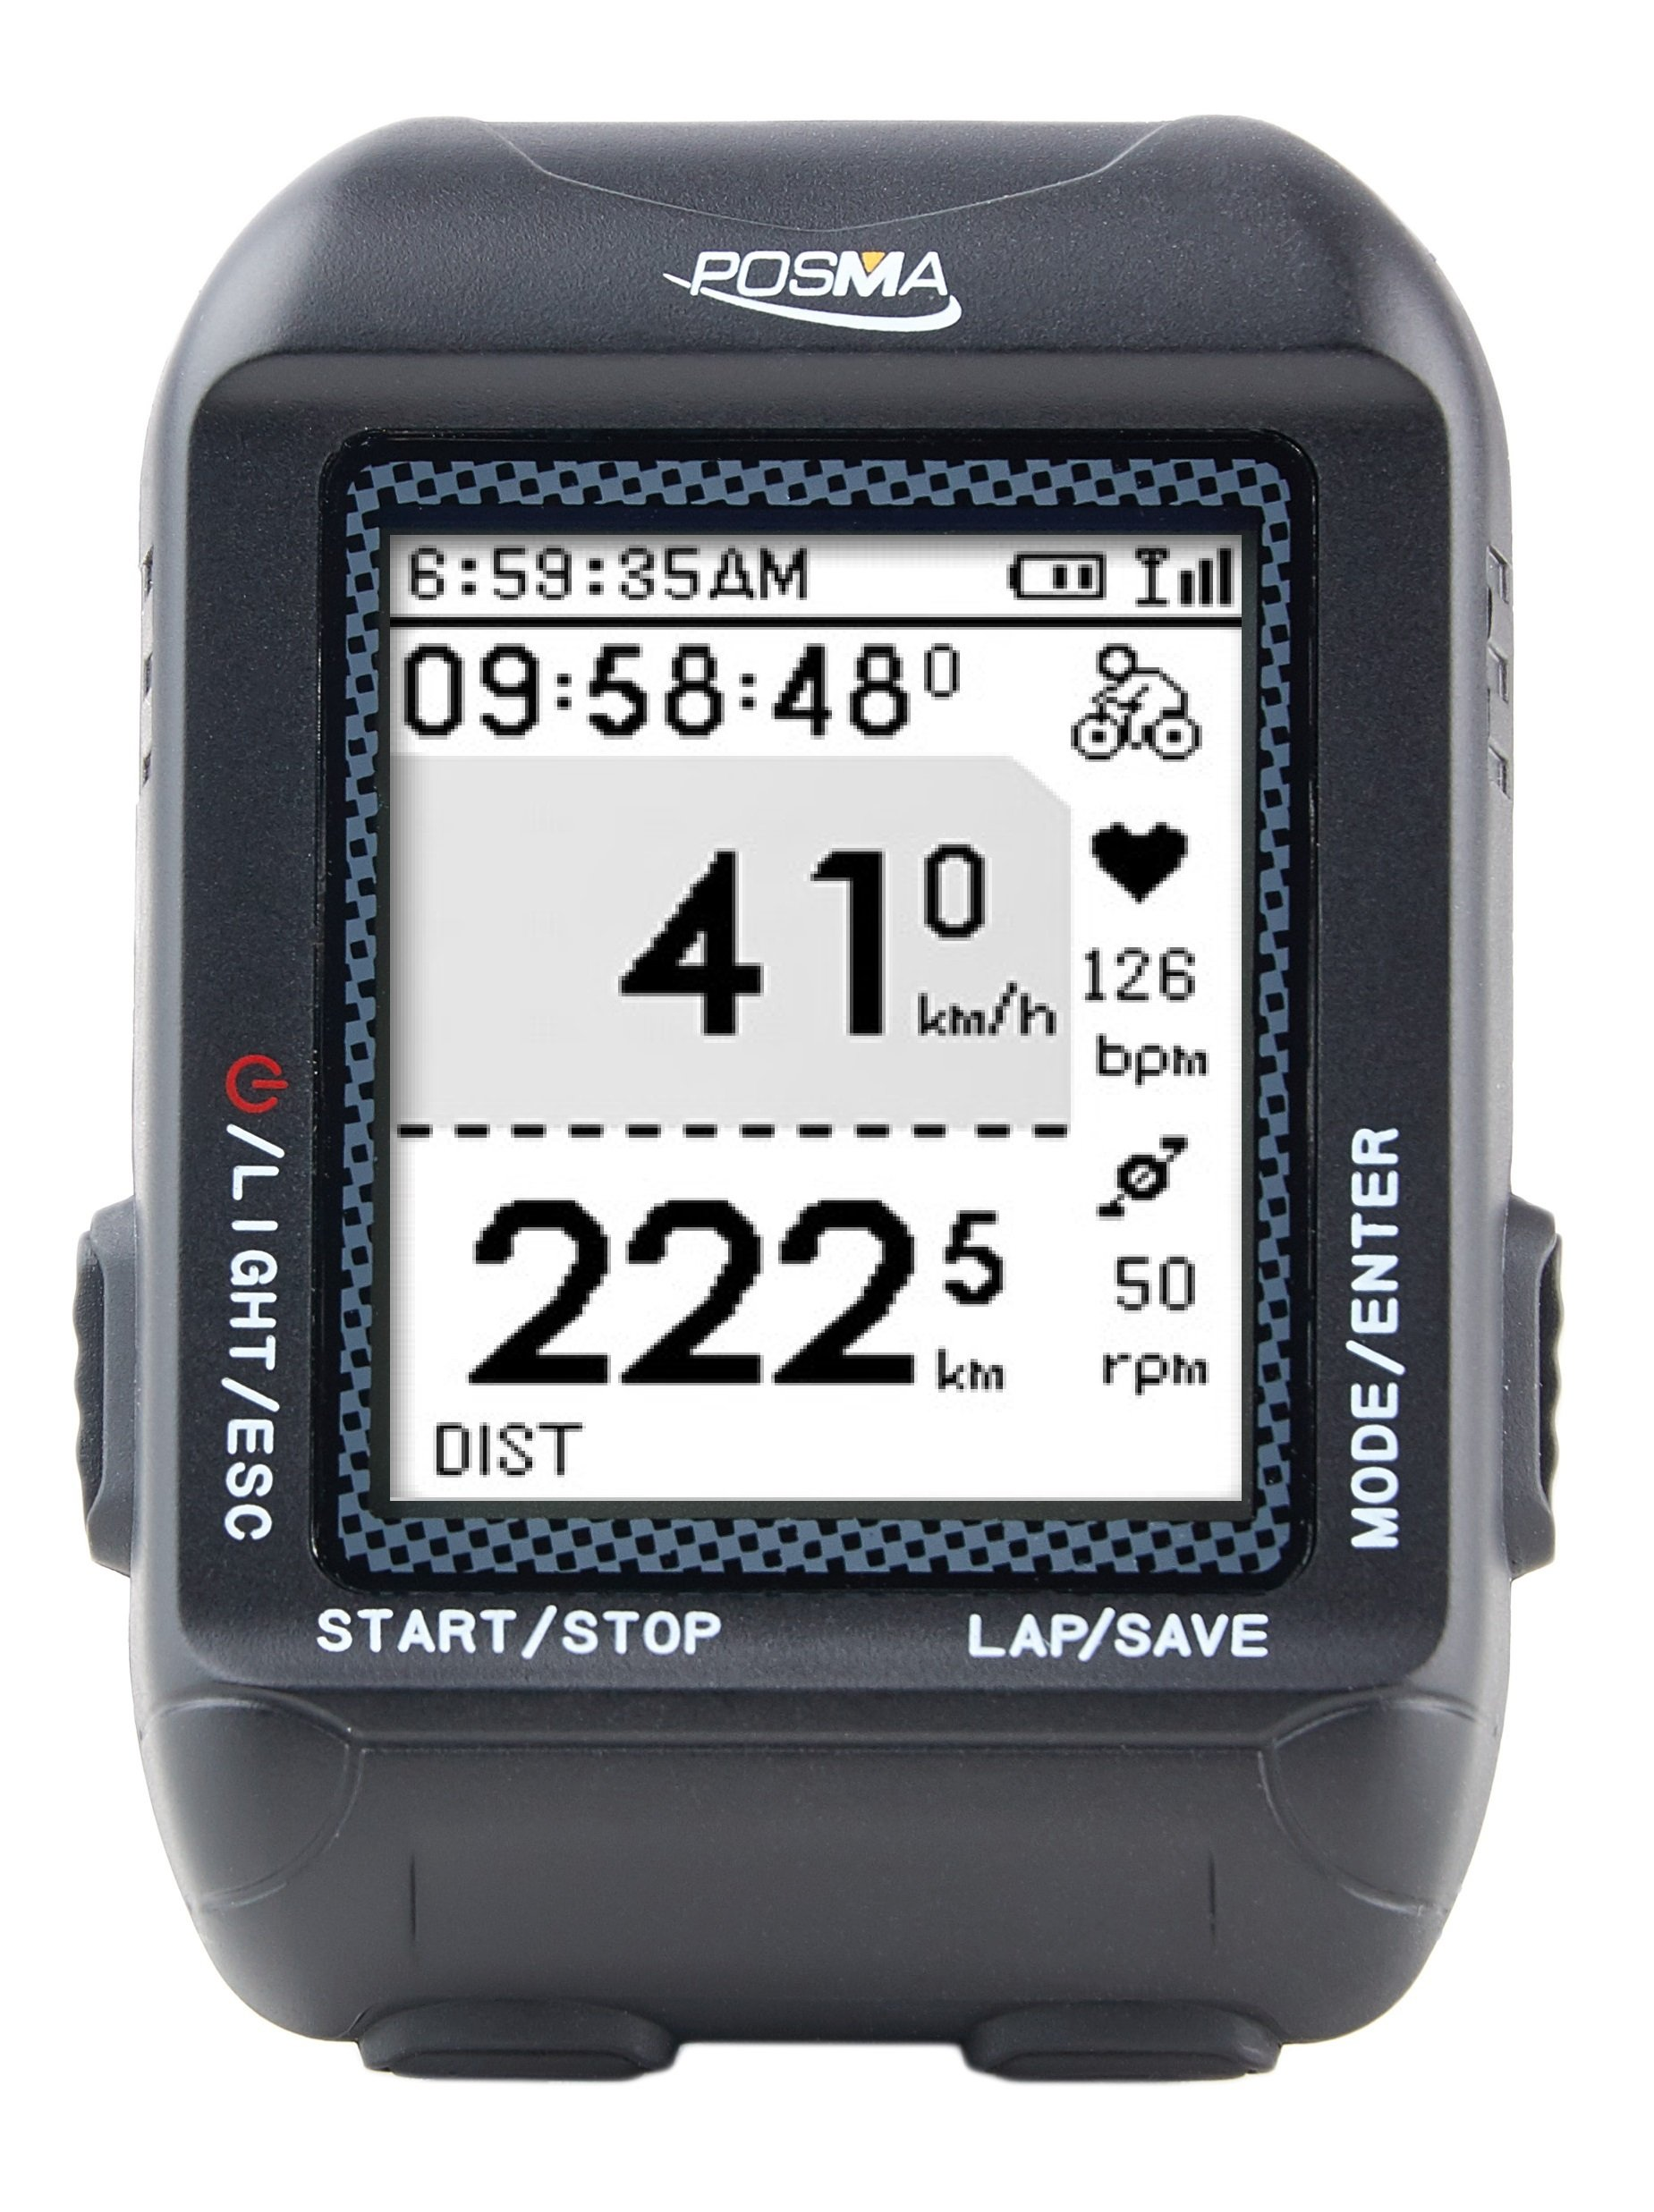 POSMA D2 GPS Wireless Cycling Bike Computer Speedometer Odometer with Navigation, ANT+ connection, support GPX file upload to STRAVA and MapMyRide